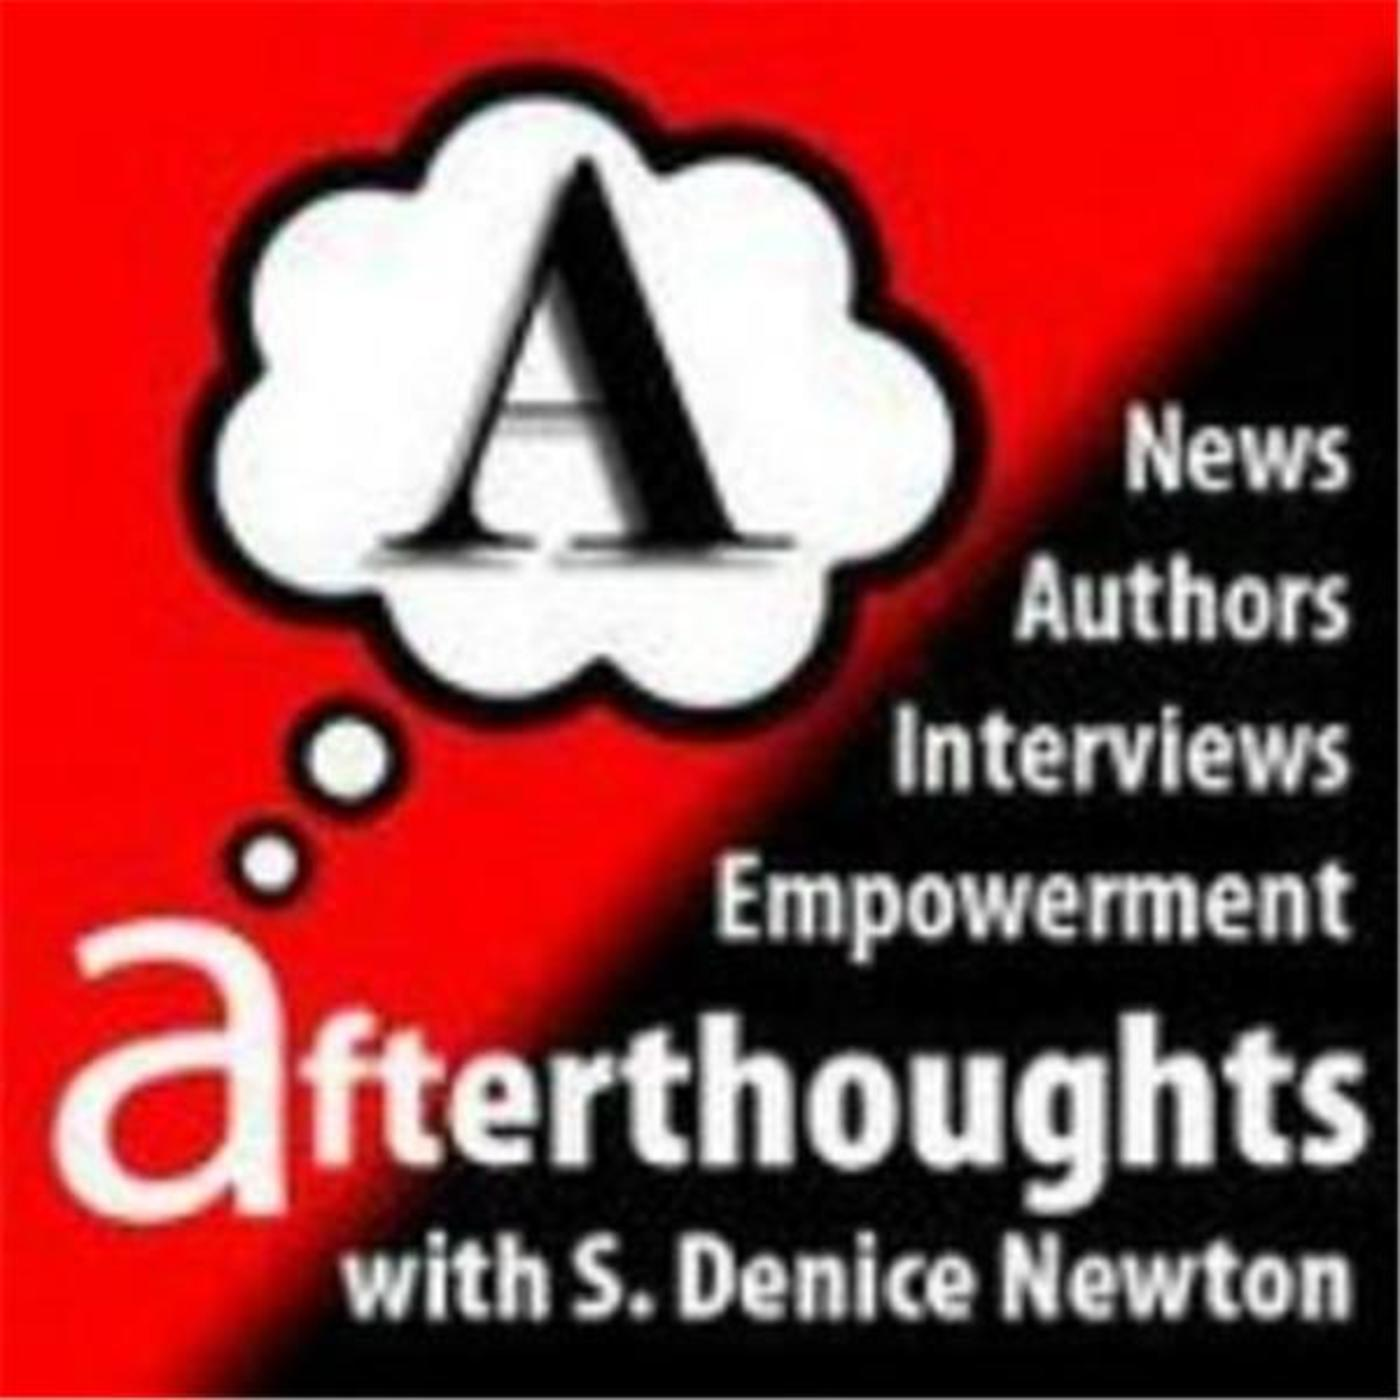 Afterthoughts With S. Denice Newton